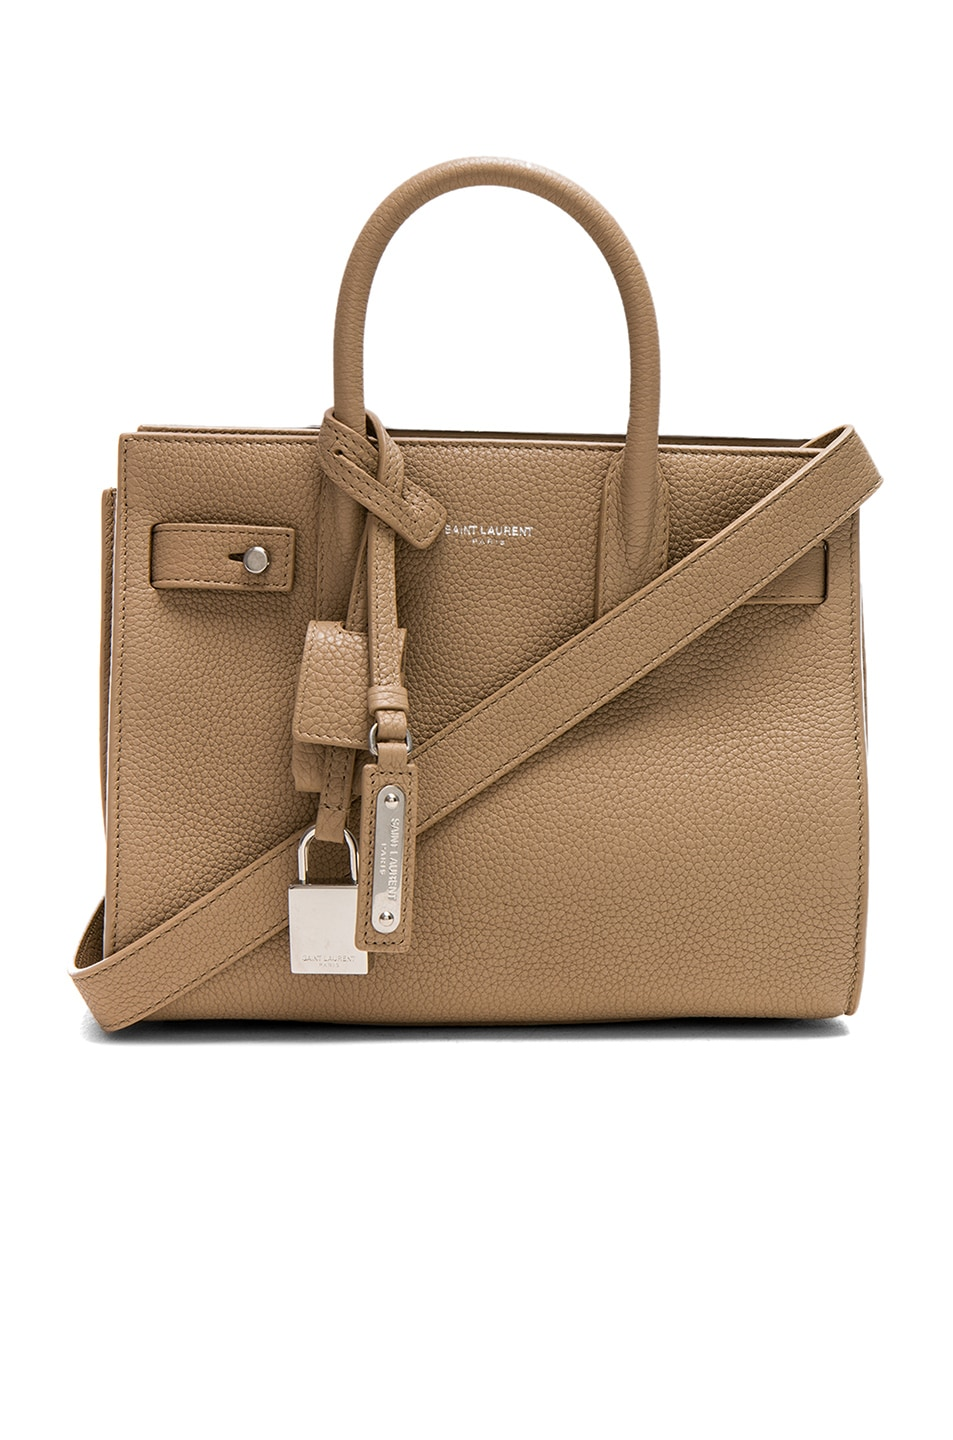 Image 1 of Saint Laurent Nano Supple Sac de Jour in Dark Beige